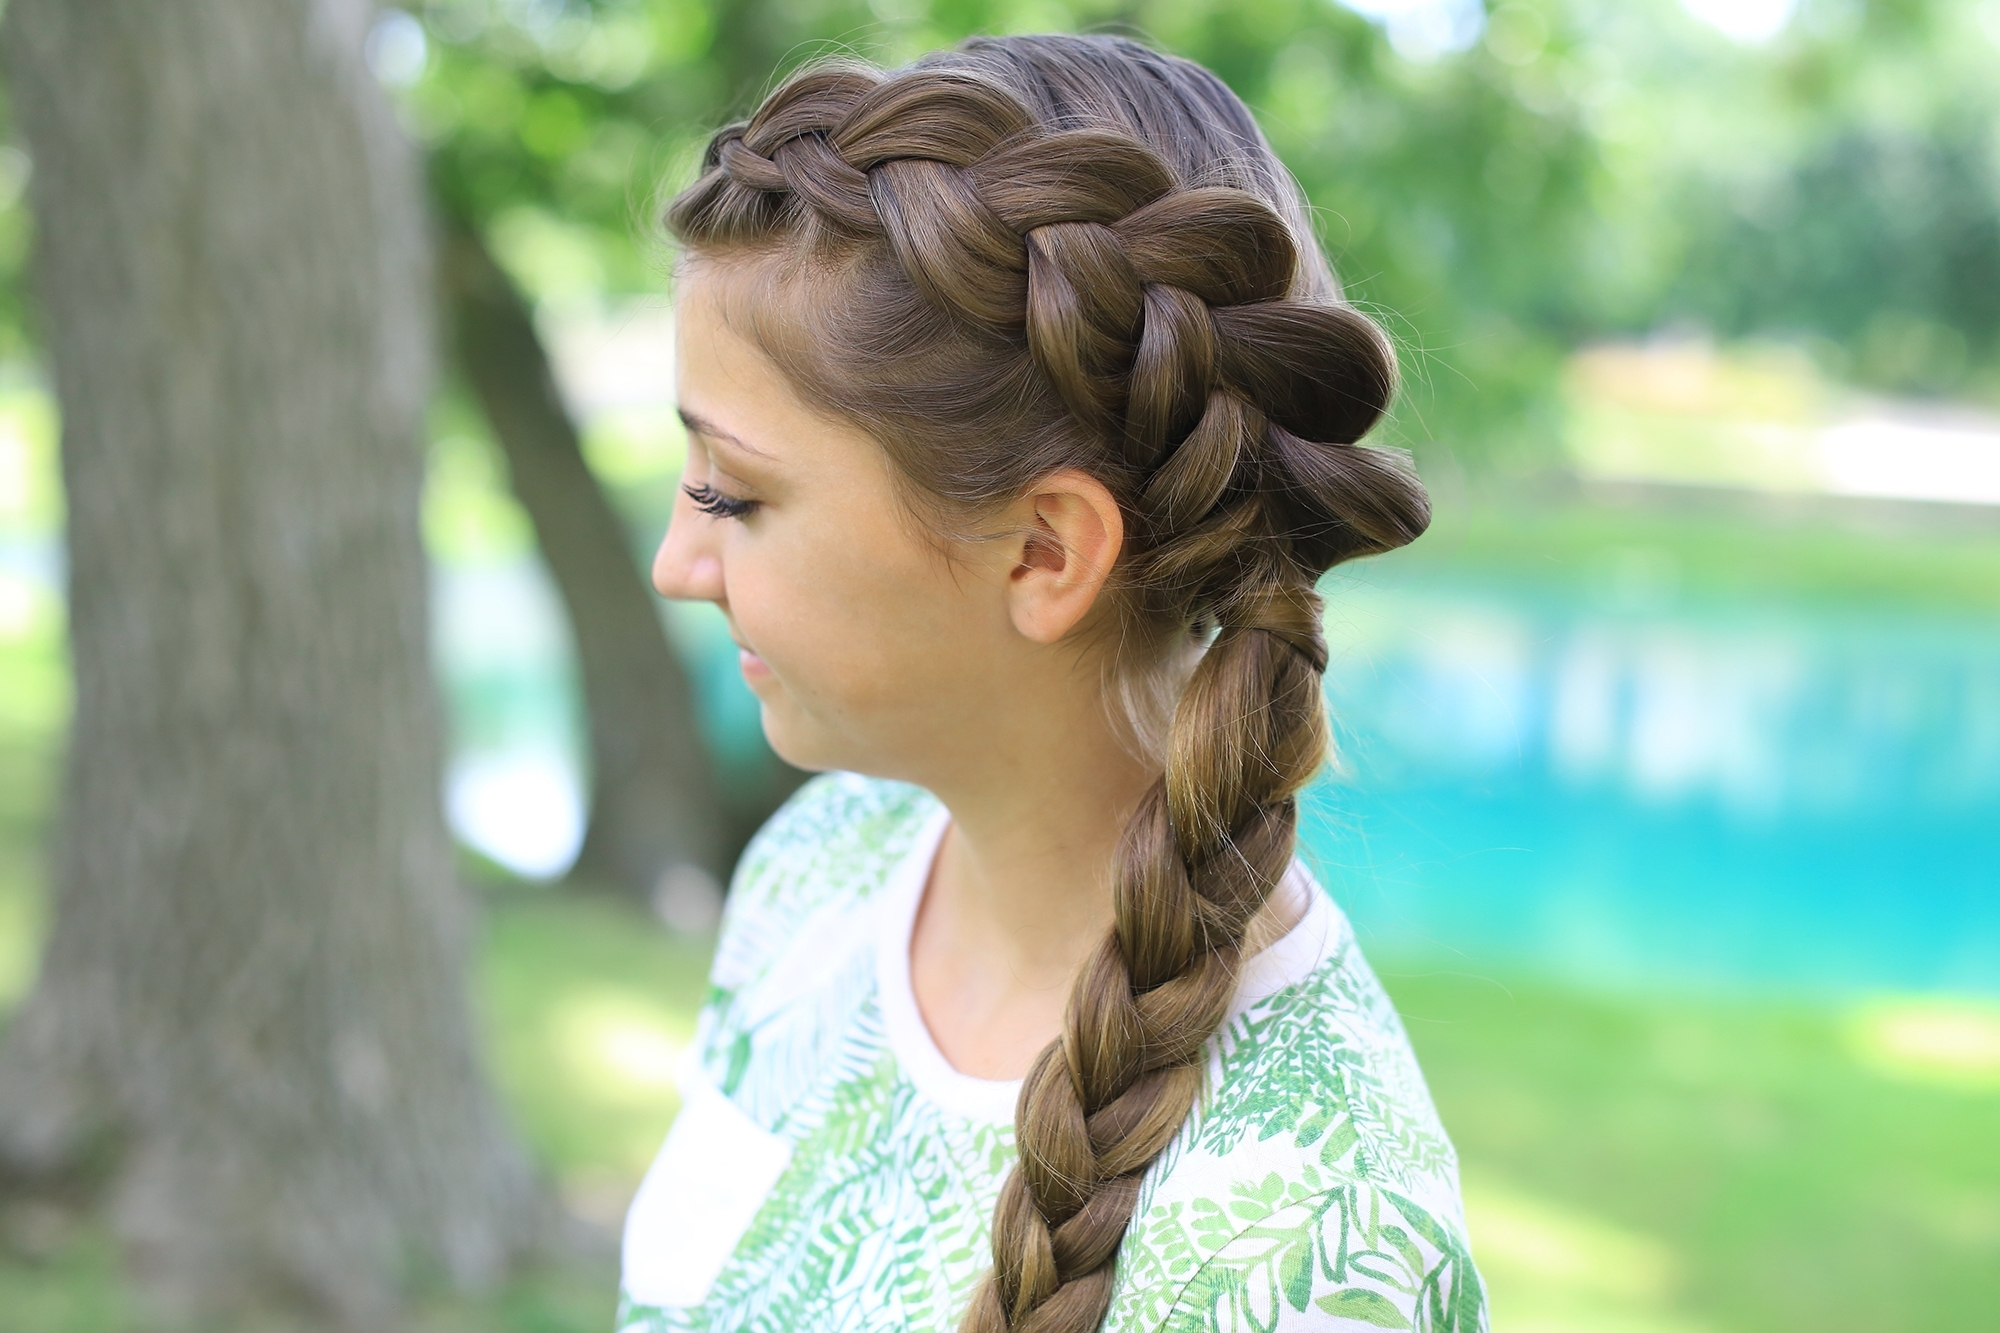 Cute Girls Hairstyles (View 4 of 20)